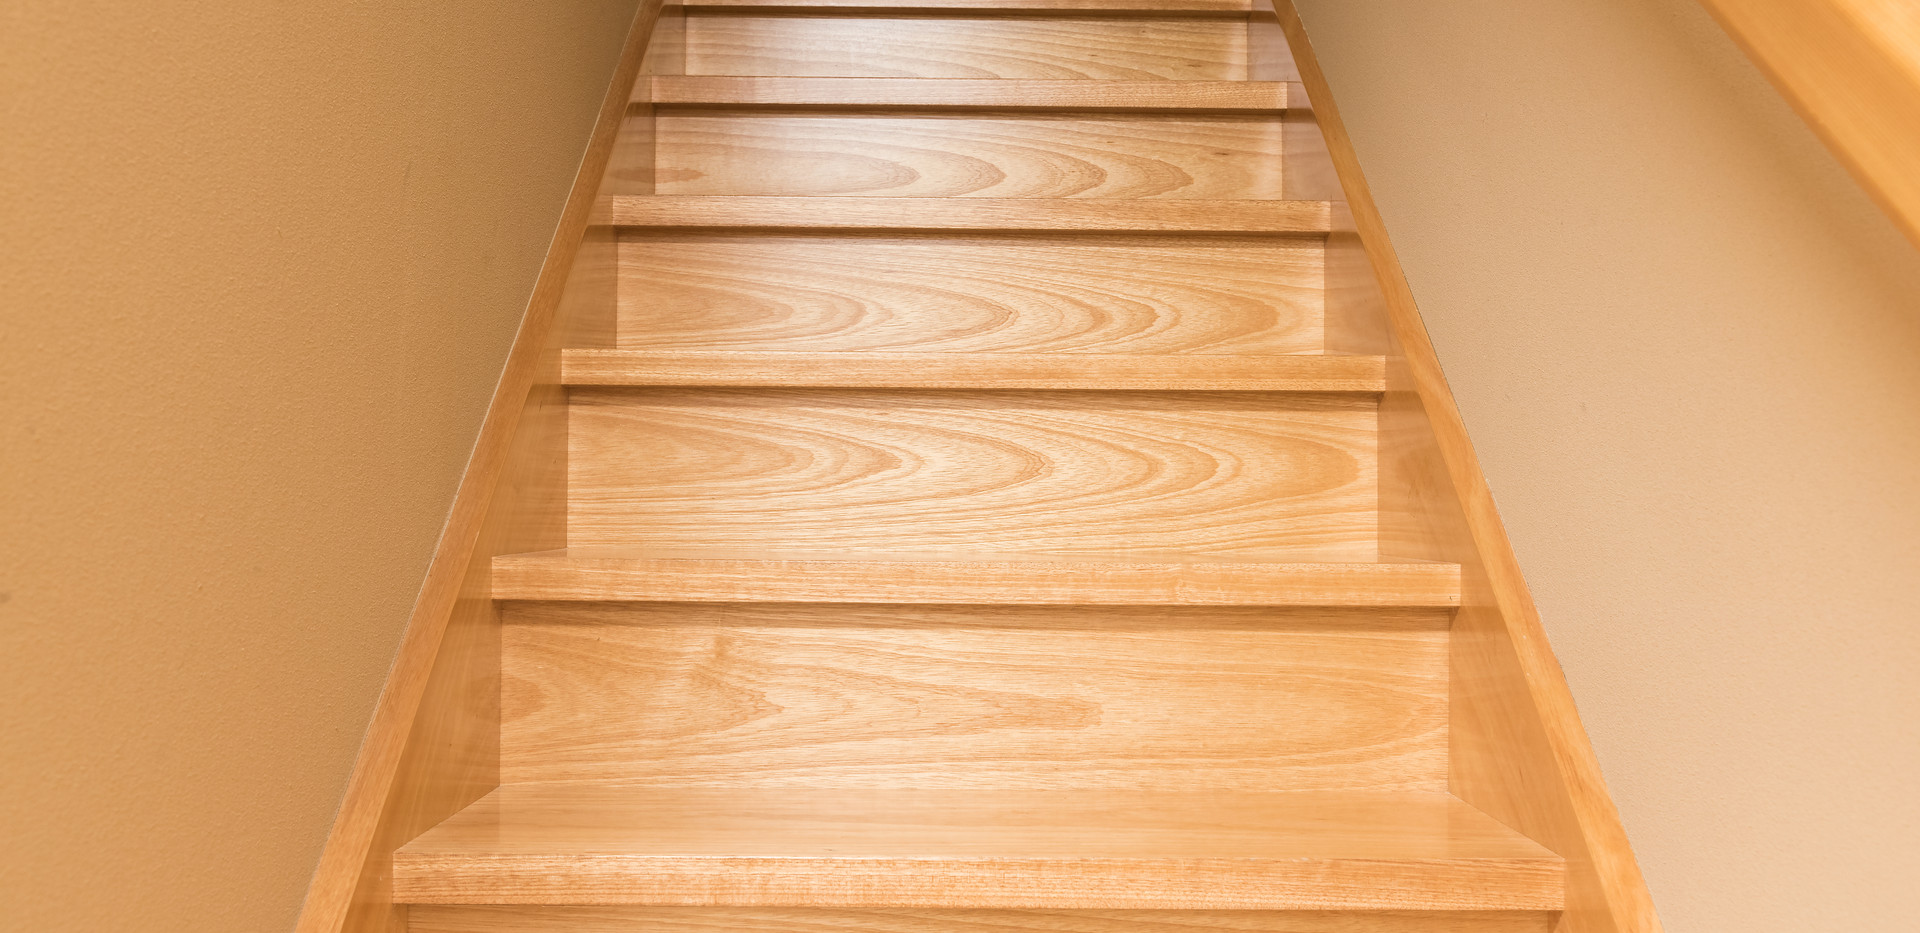 Wooden staircase, classic Japanese stair